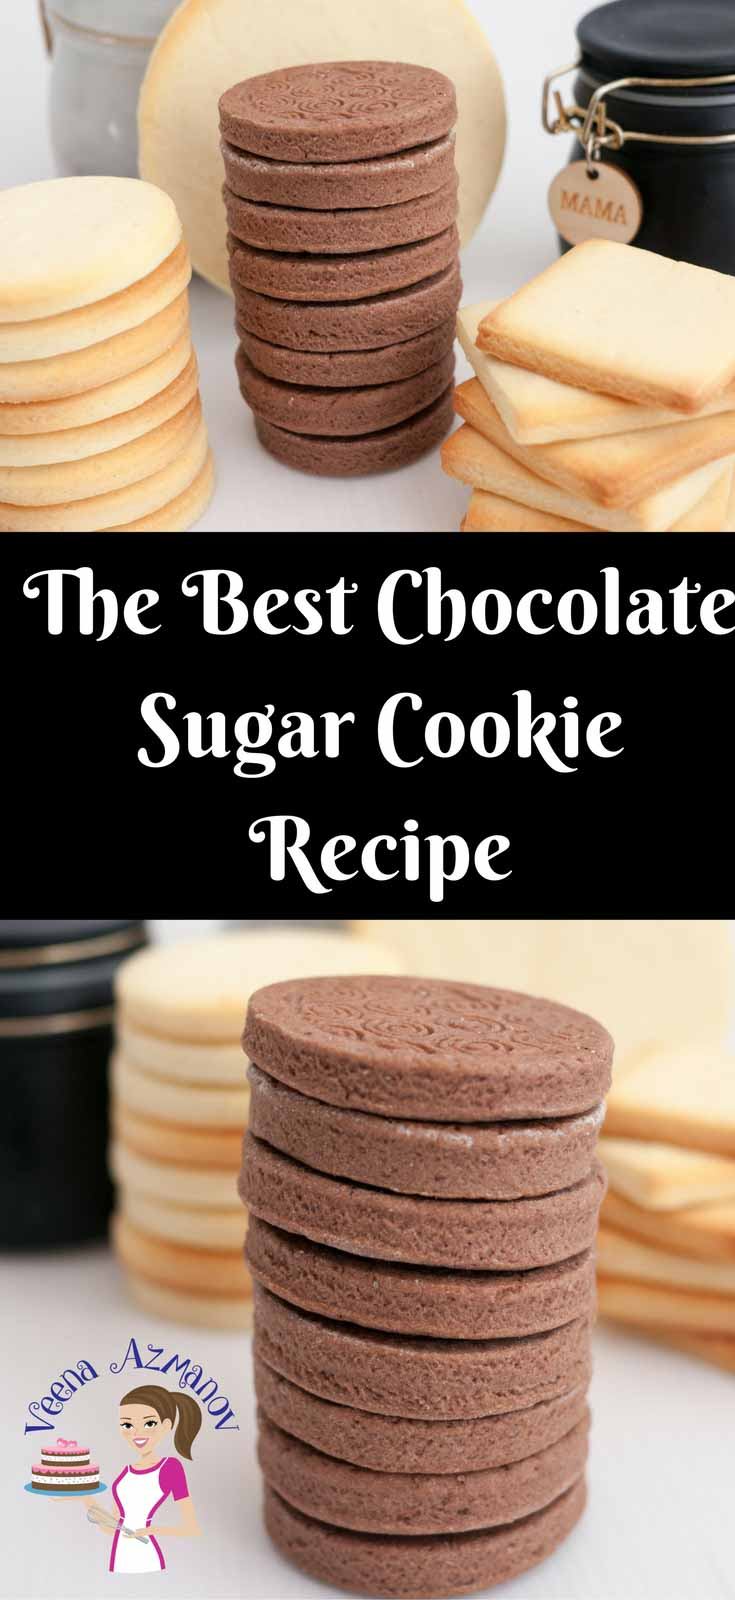 The Best Chocolate Sugar Cookies Recipe - Veena Azmanov